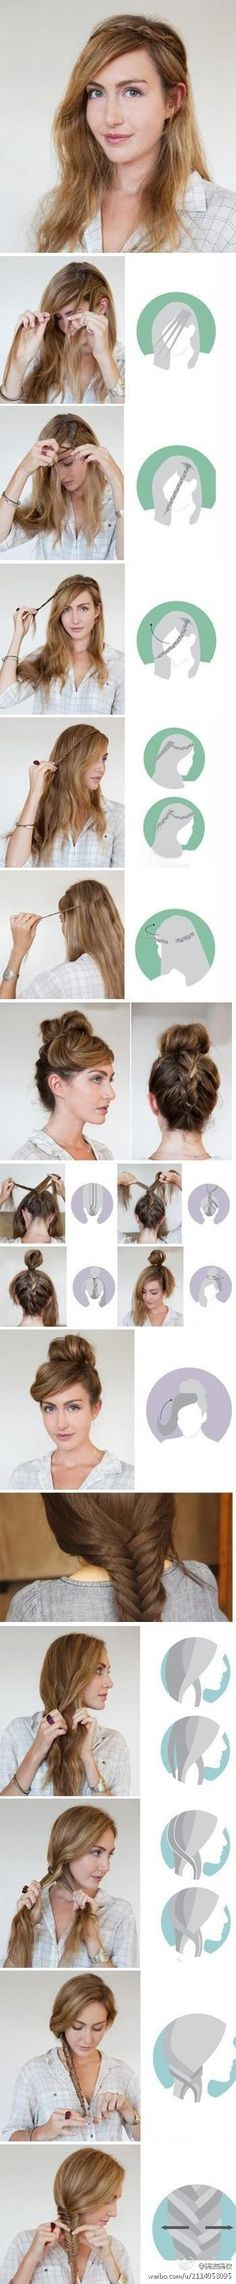 How to hair... i wish i had the patience to do pretty hair